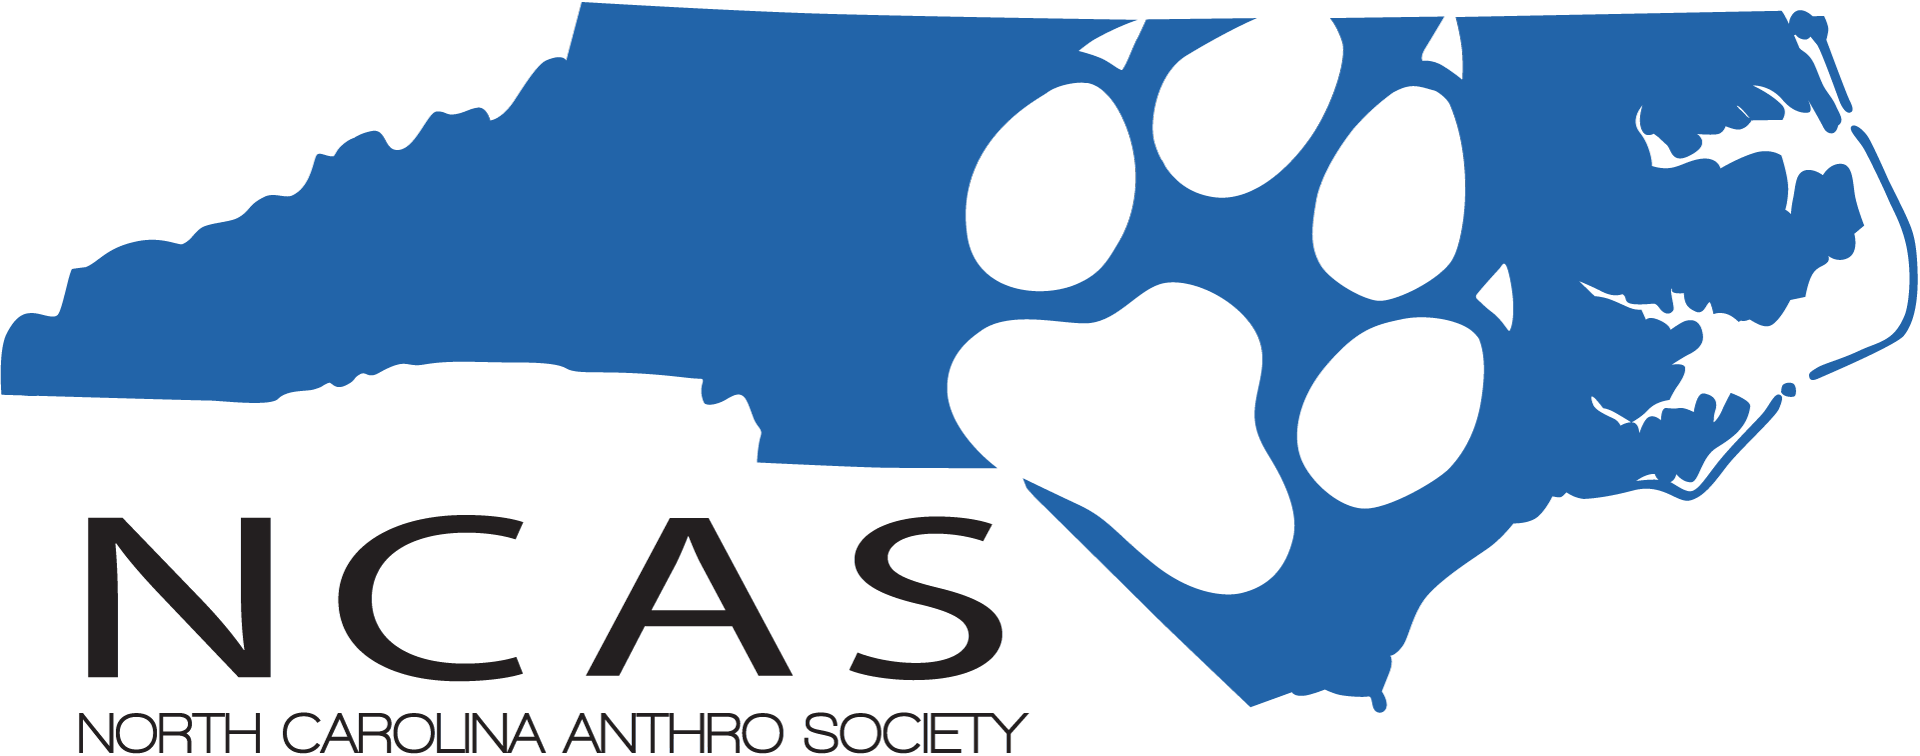 NCAS North Carolina Anthro Society Logo